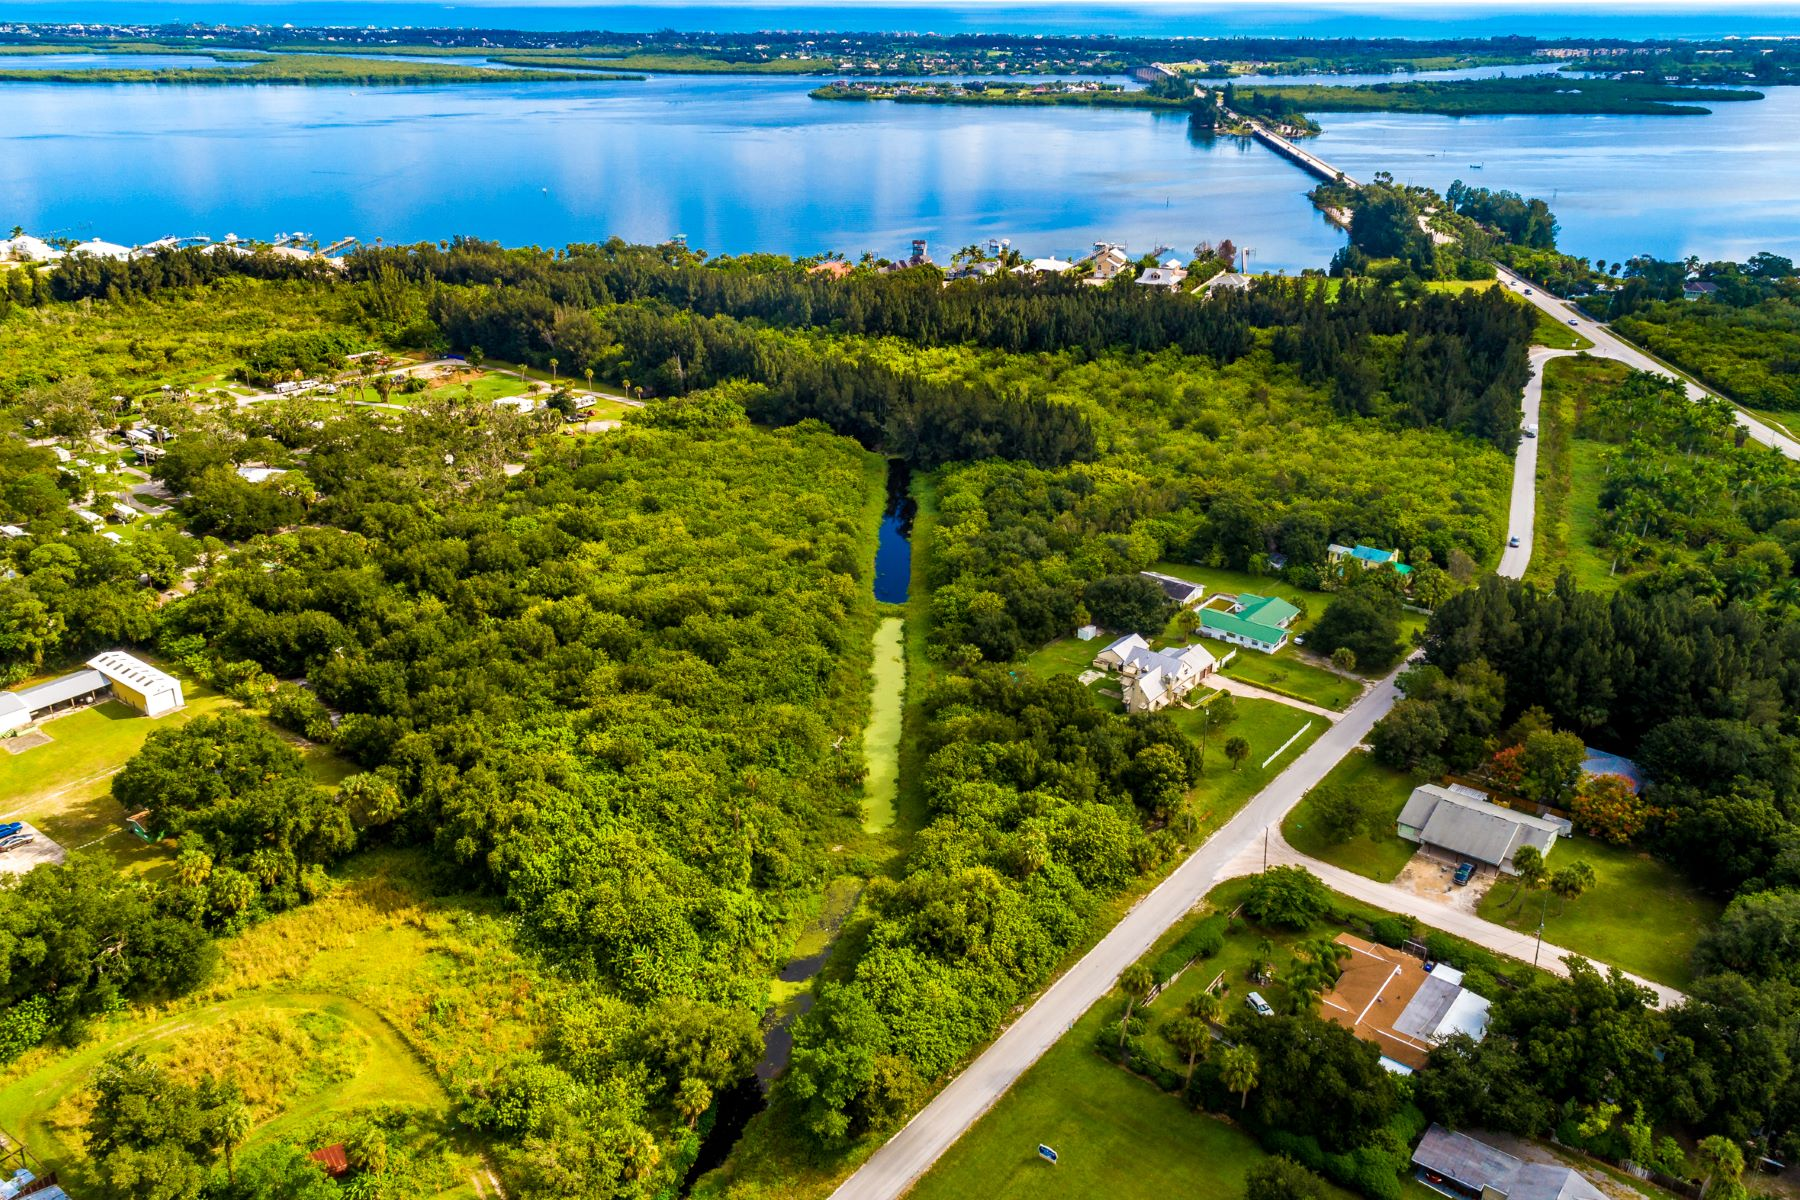 Twenty Three Acres by Wabasso Causeway Area Near Indian River 4790 87th Street Sebastian, Florida 32958 Estados Unidos